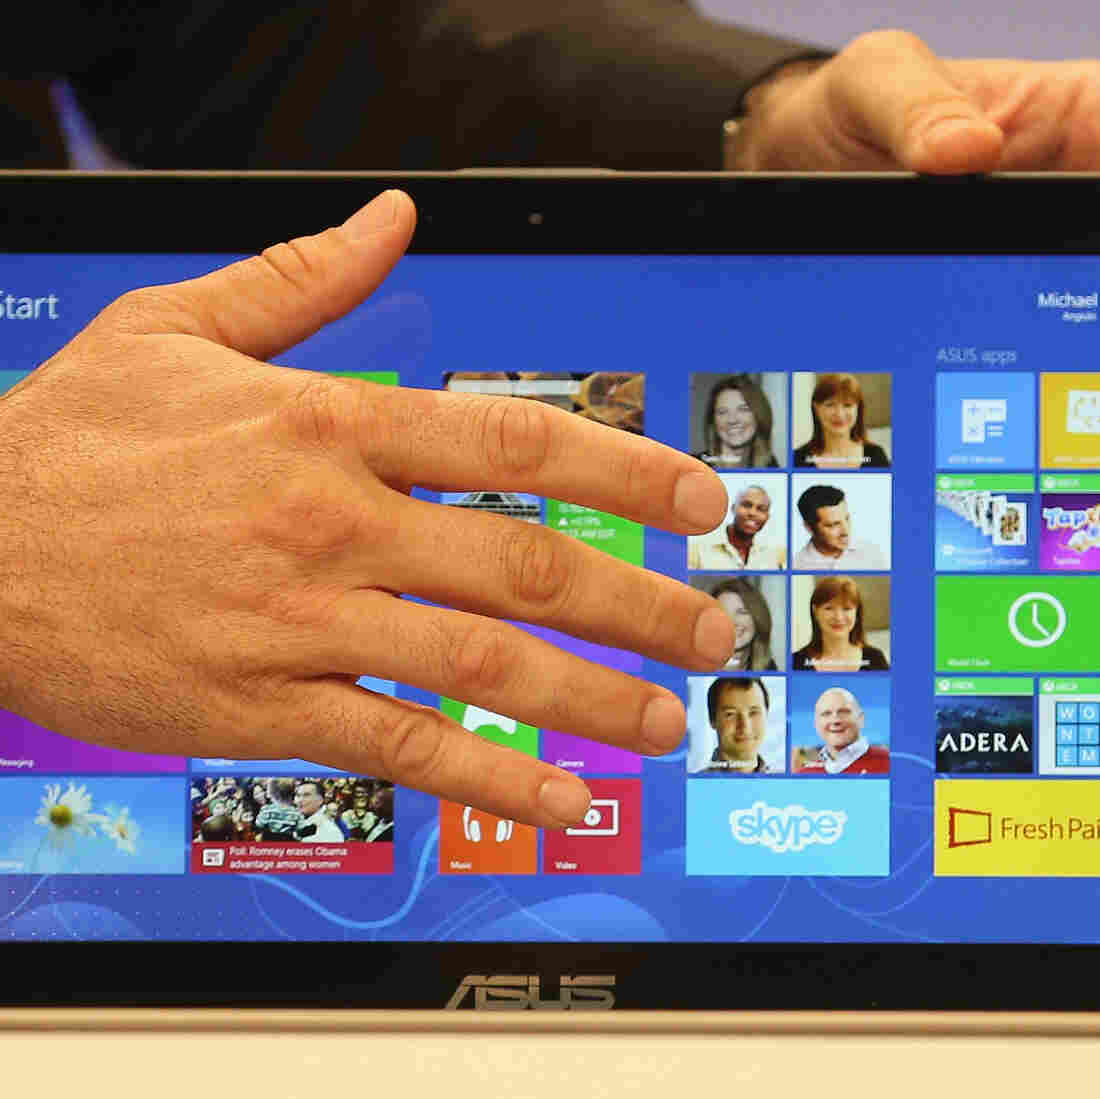 Can Windows 8 Bridge The Gap Between Tablet And PC?